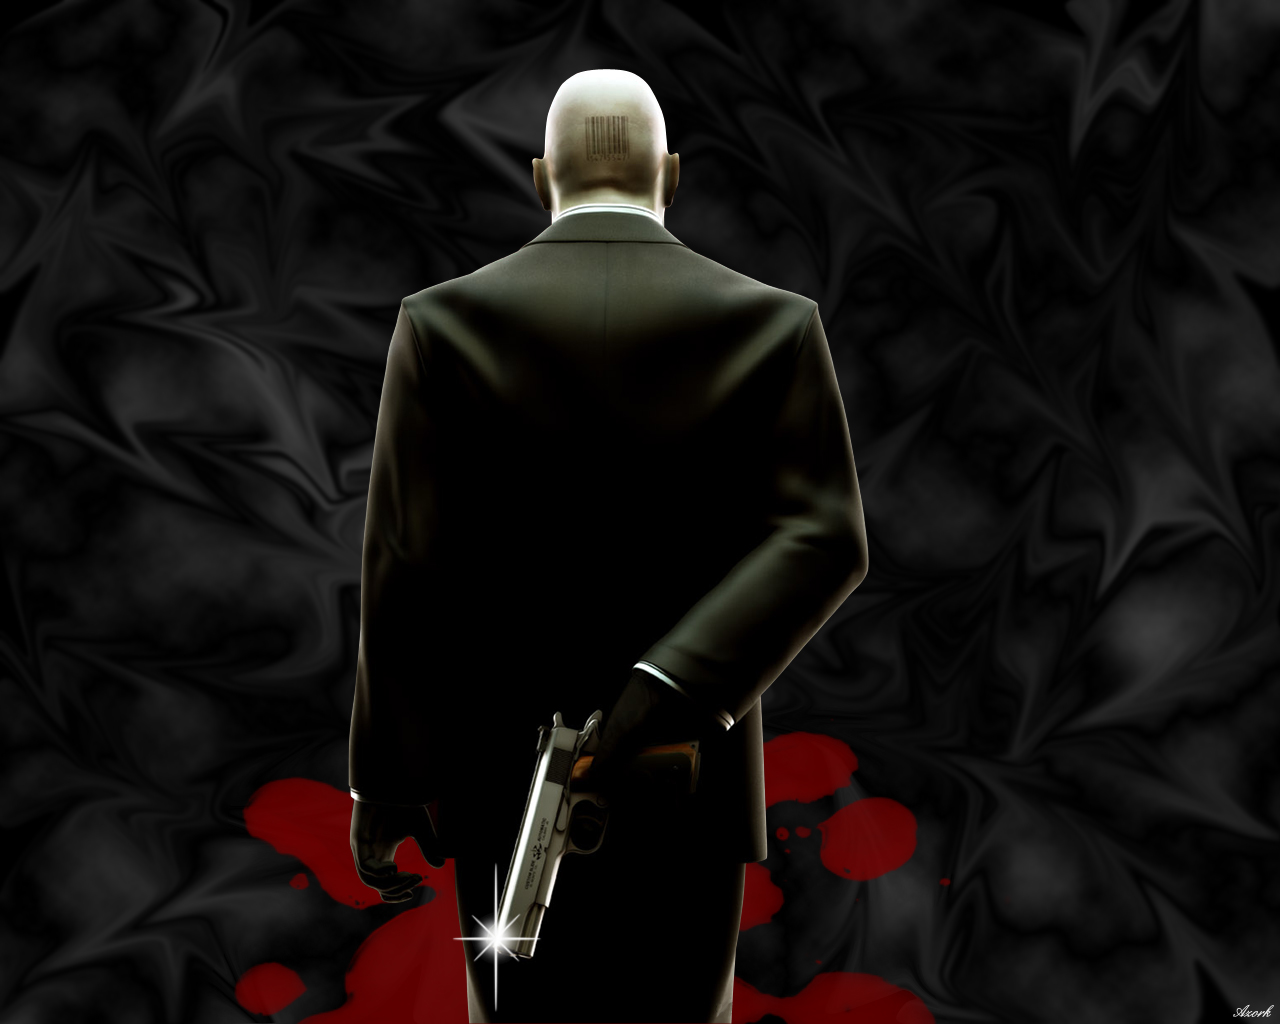 hitman wallpaper 2 you are viewing the hitman wallpaper named hitman 2 1280x1024